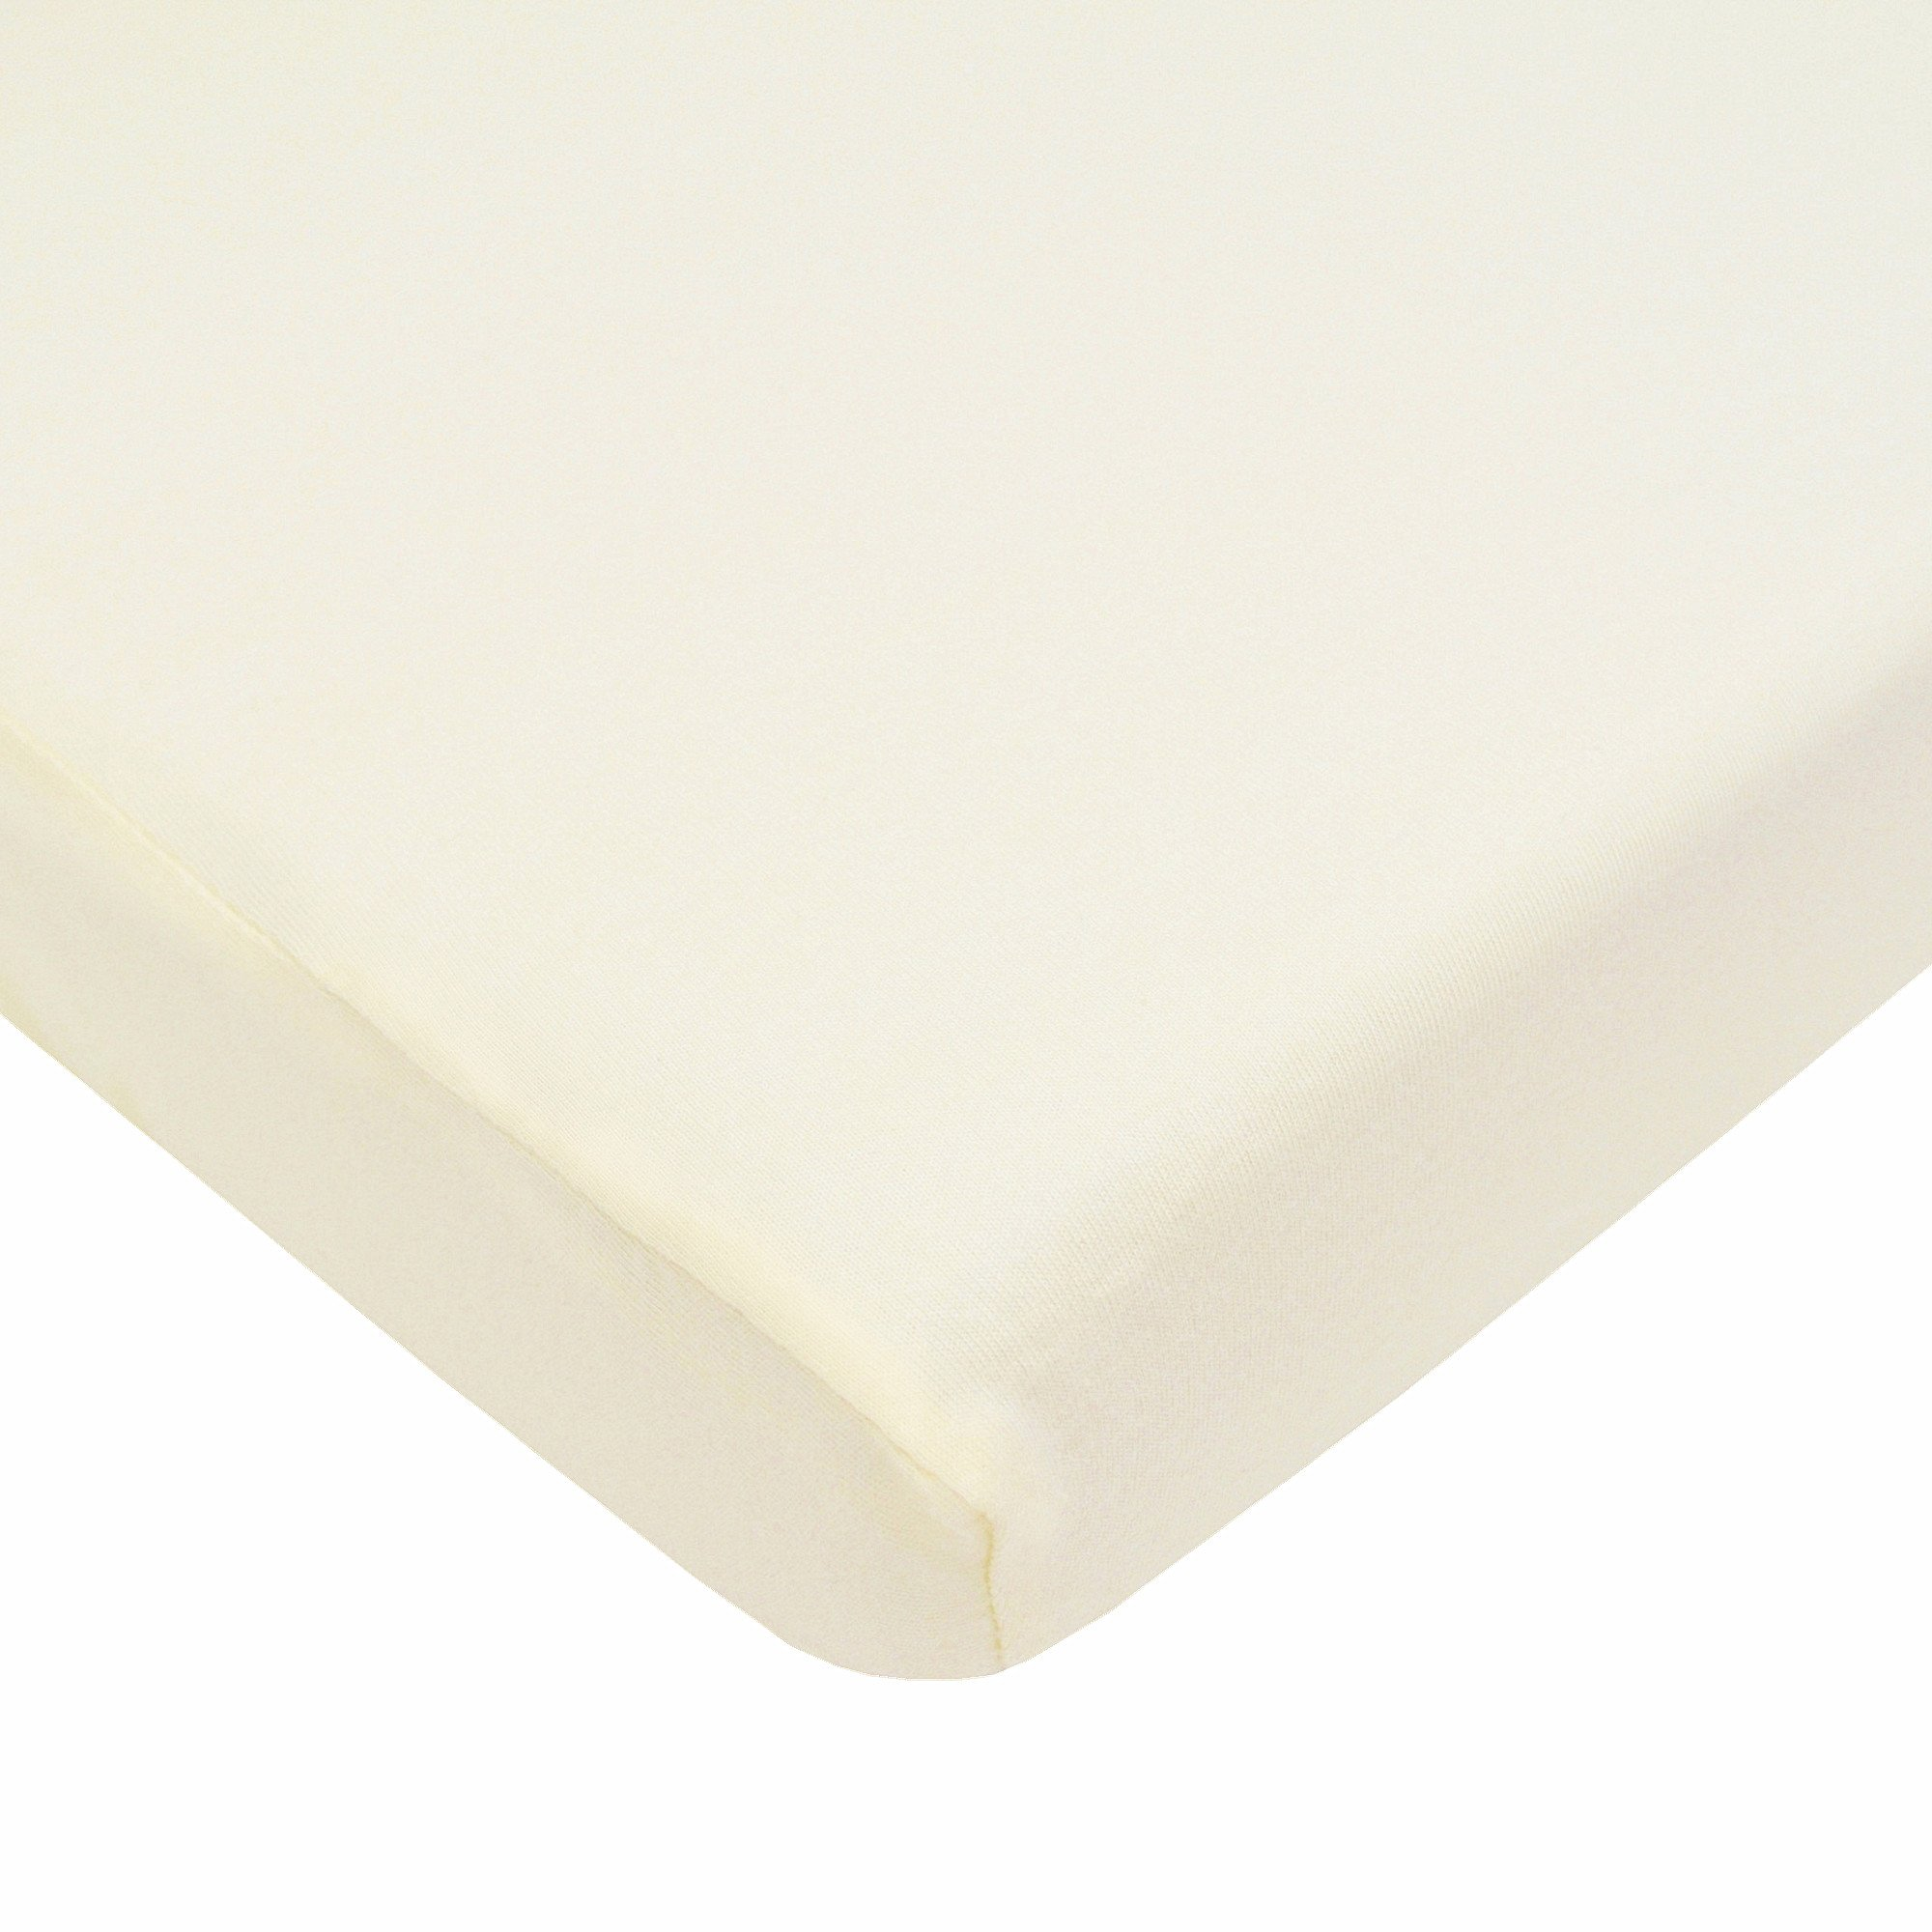 American Baby Company 100% Cotton Value Jersey Knit Fitted Portable/Mini-Crib Sheet, Ecru